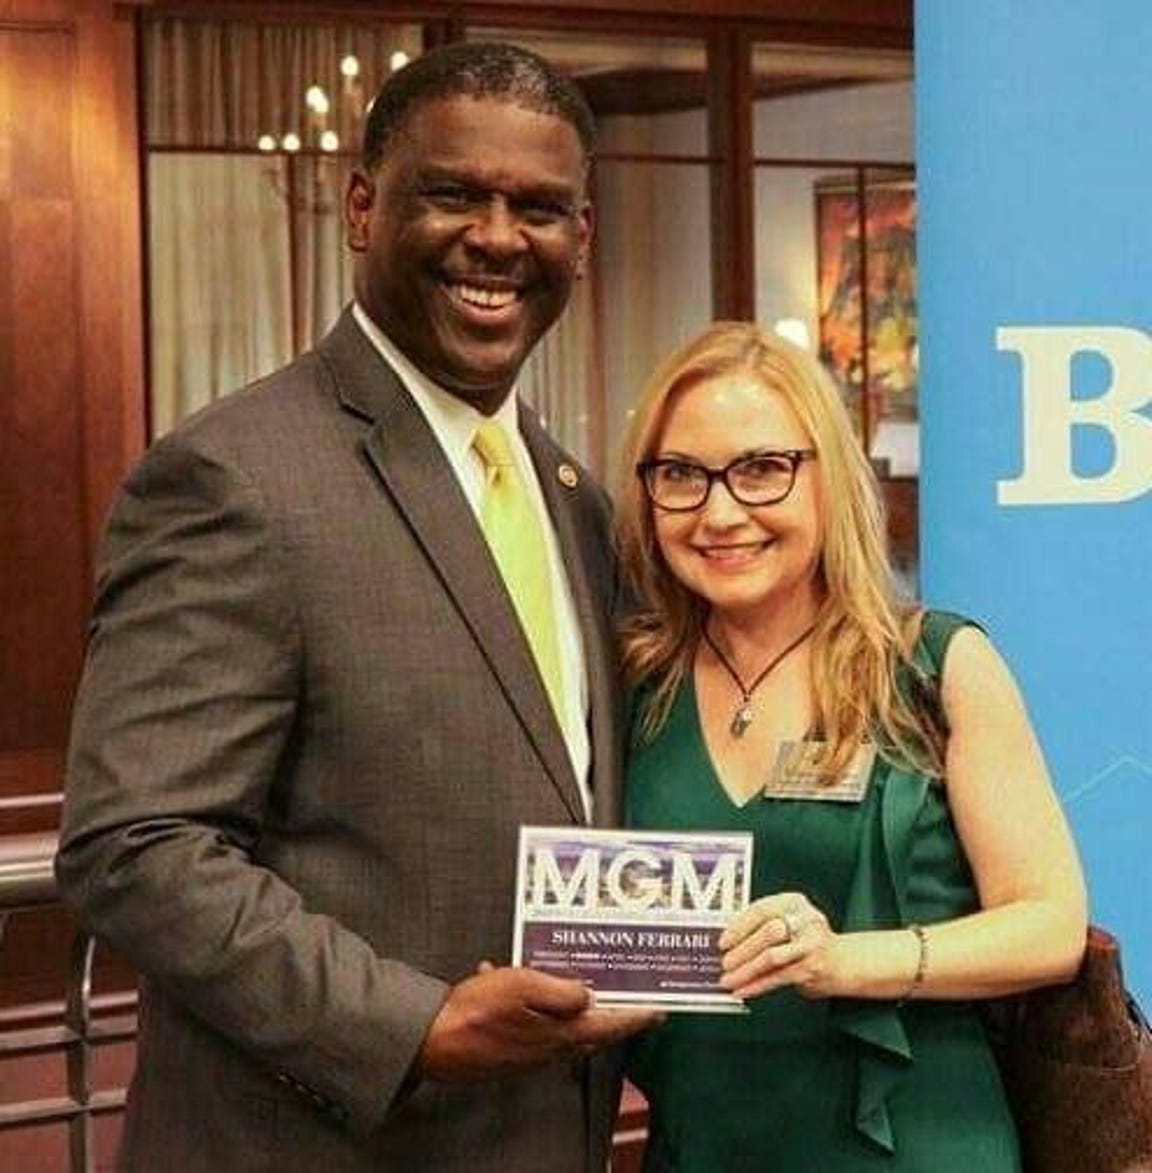 Shannon Ferrari, an ambassadors with the Montgomery Chamber of Commerce, announced her intention to run for mayor on Tuesday, May 14, 2019.